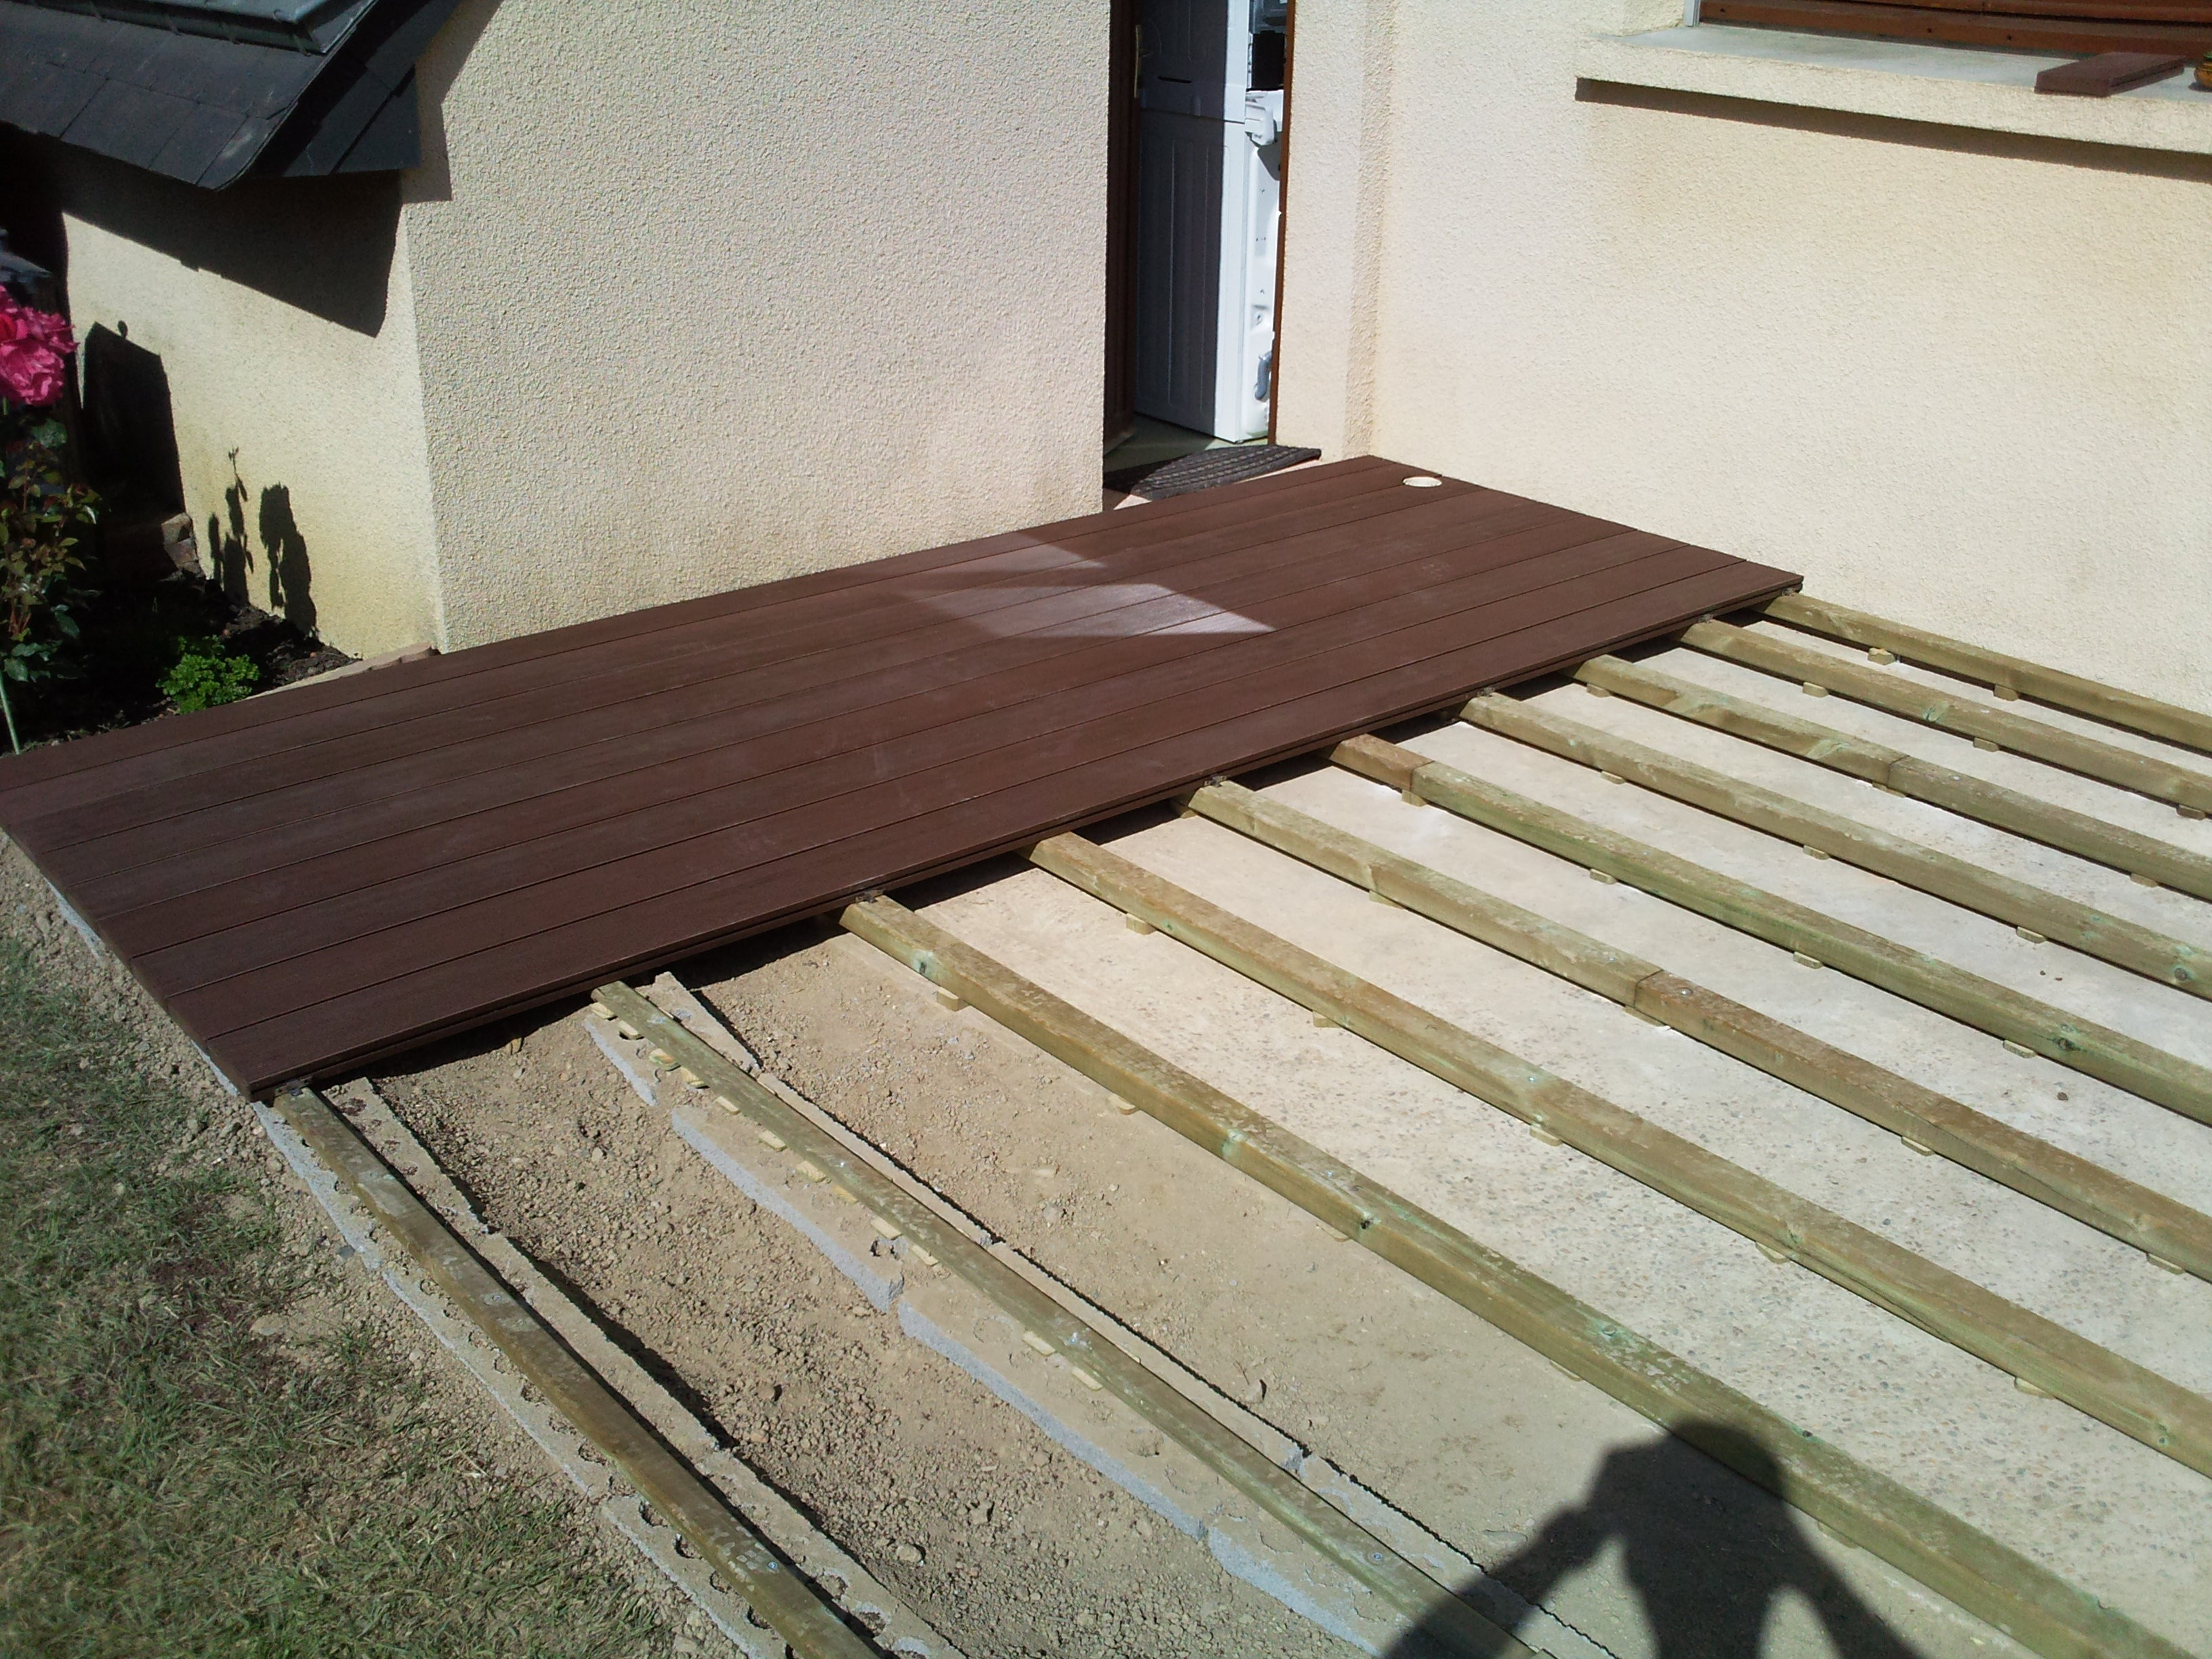 Comment Poser Des Lames De Terrasse Composite Fixation Lame De Terrasse Composite Davidreed Co